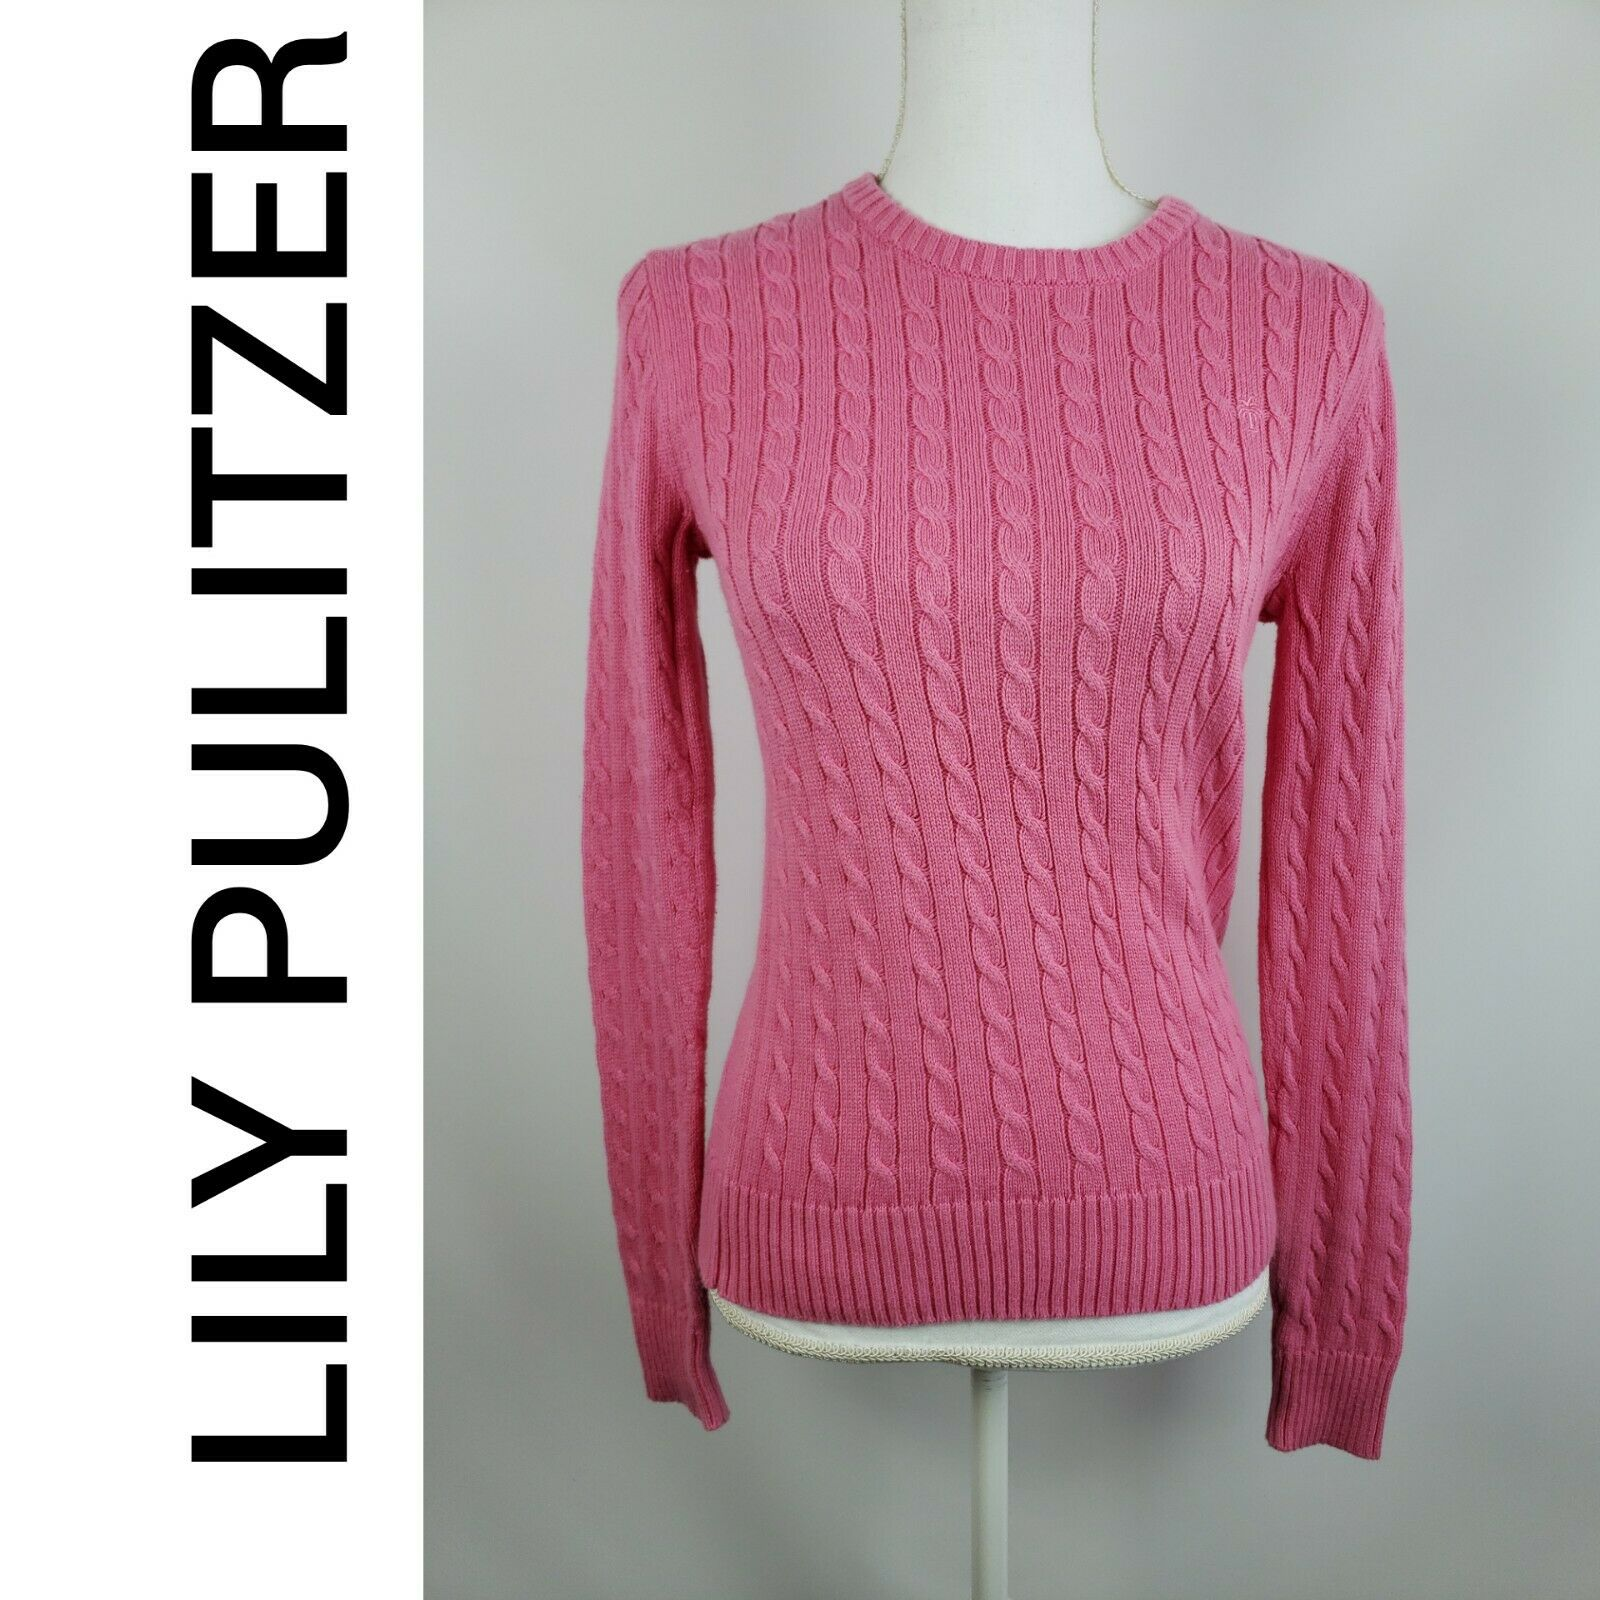 Lily Pulitzer Women's 100% Cotton Sweater Long Sleeve Pink Size Small